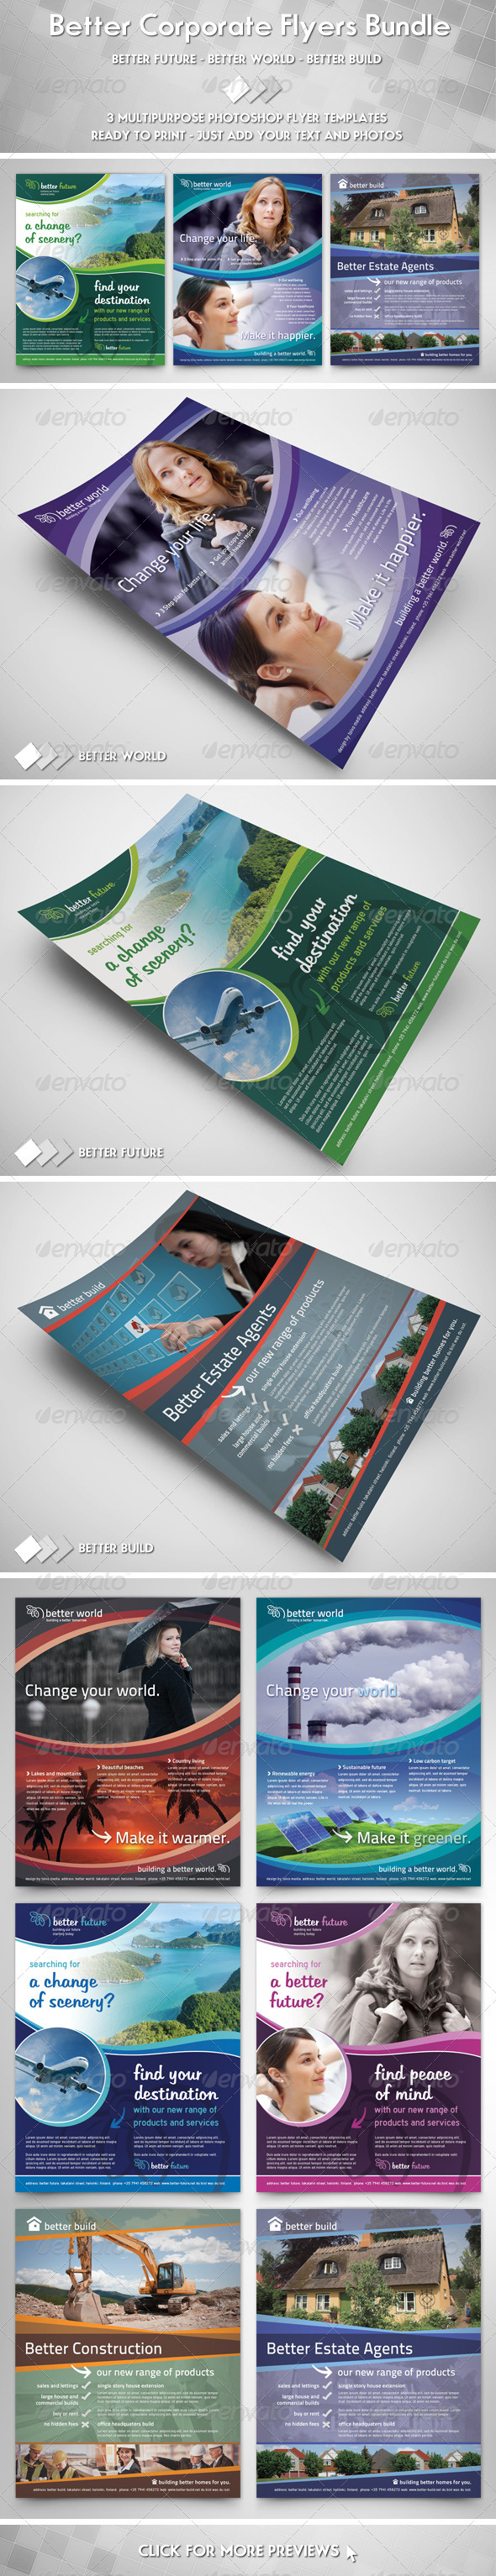 Better Corporate Flyers Bundle - Corporate Flyers